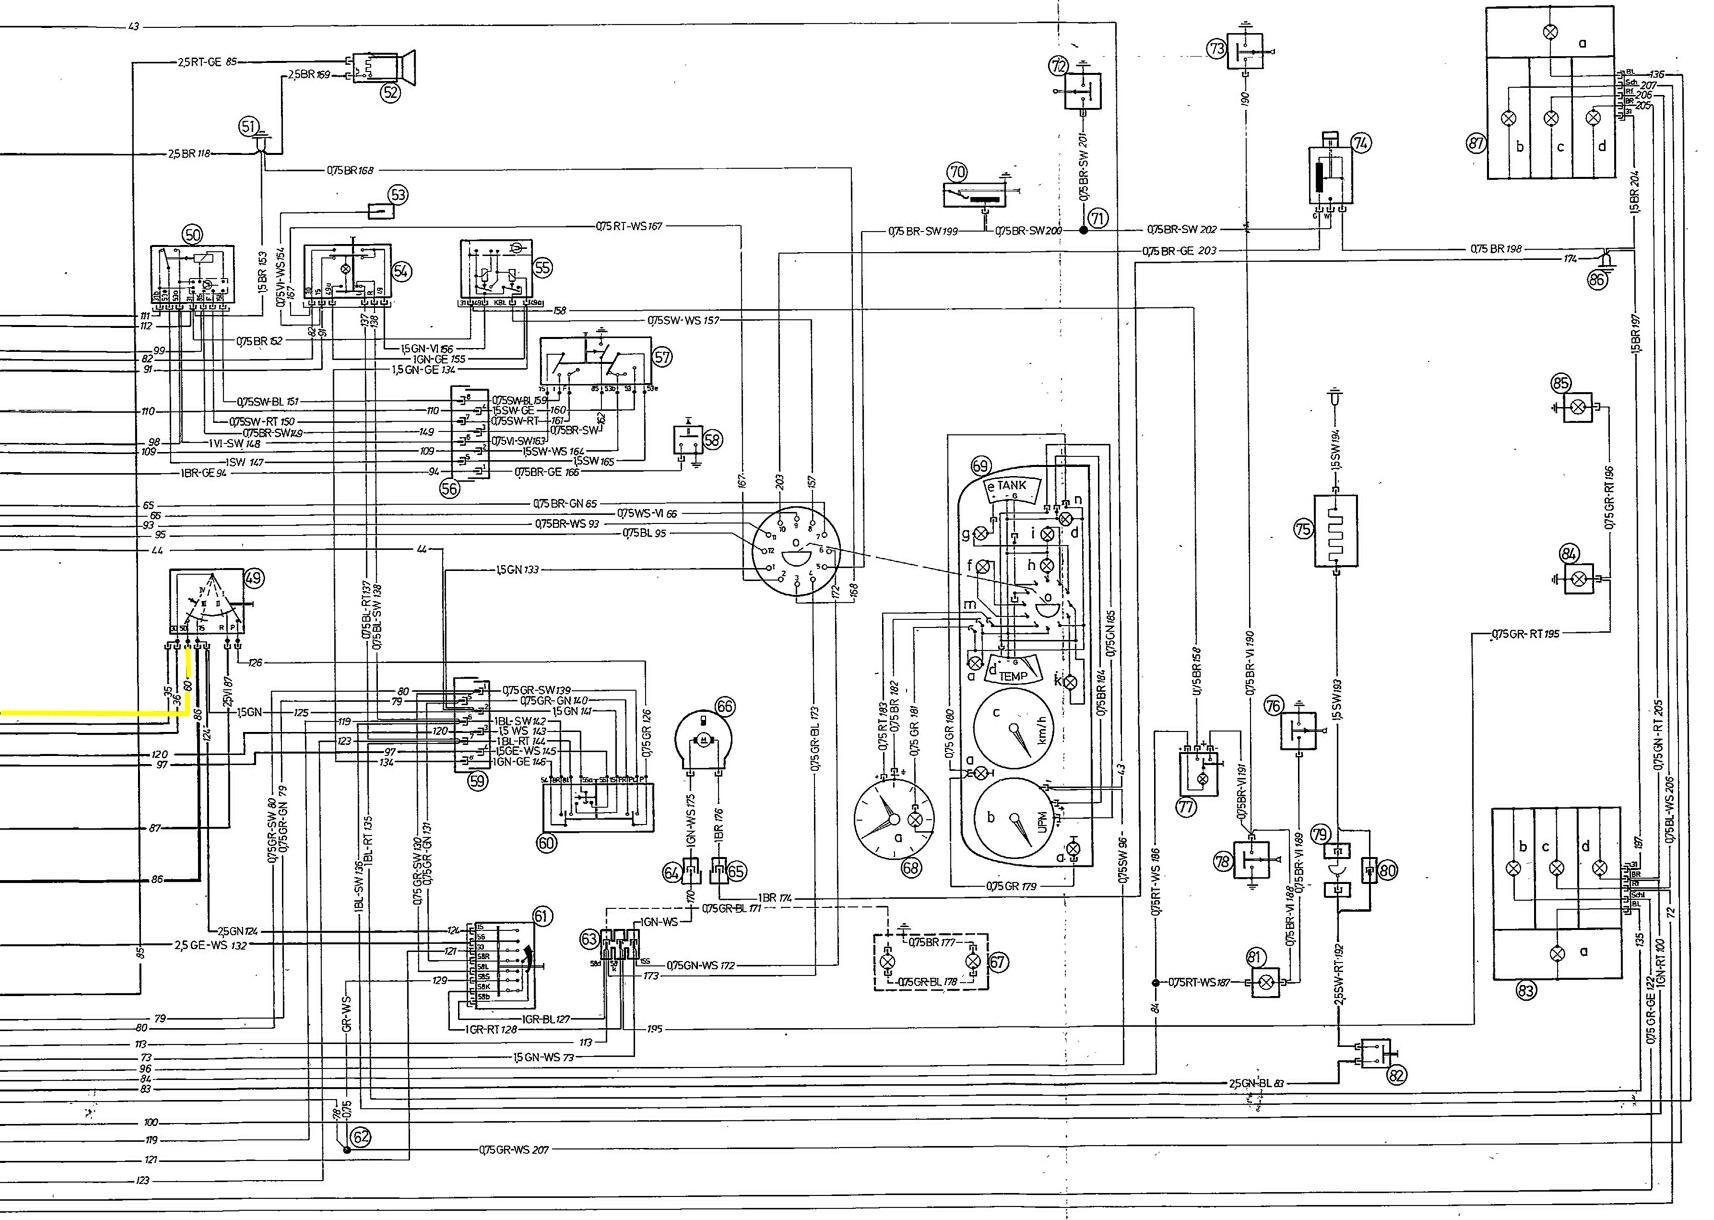 2002 Bmw 325i Wiring Diagrams Wiring Diagram Time Note Time Note Agriturismoduemadonne It